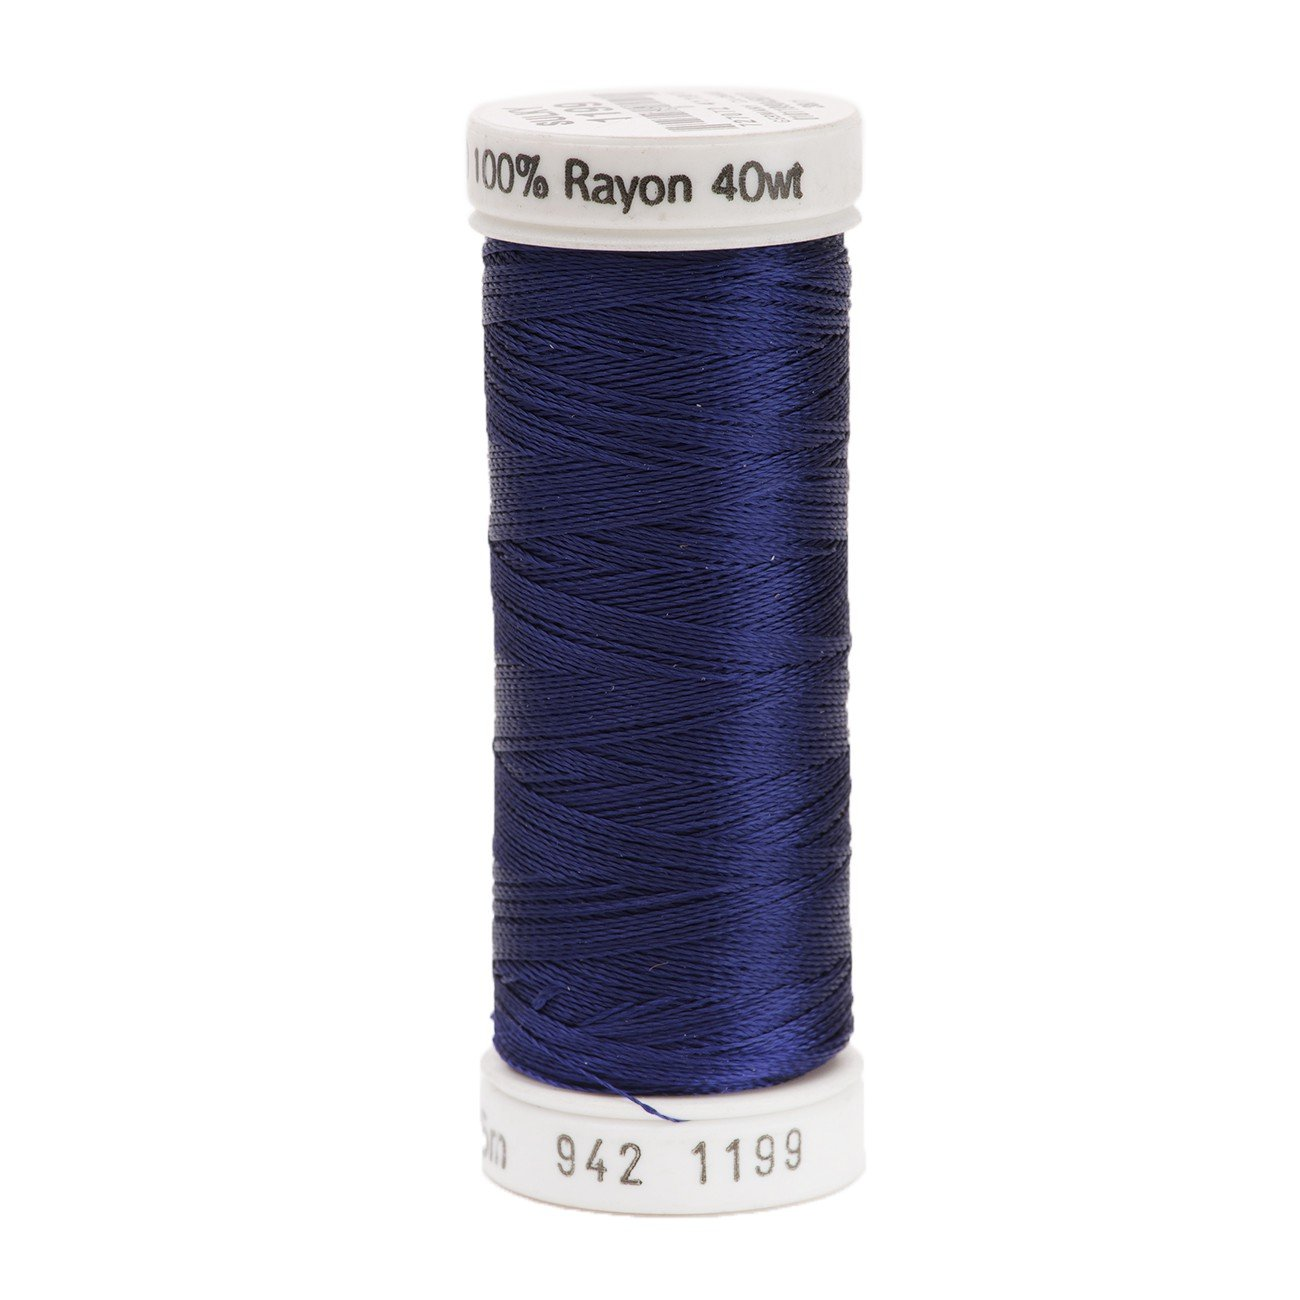 Sulky Rayon Thread for Sewing, 250-Yard, Admiral Navy Blue